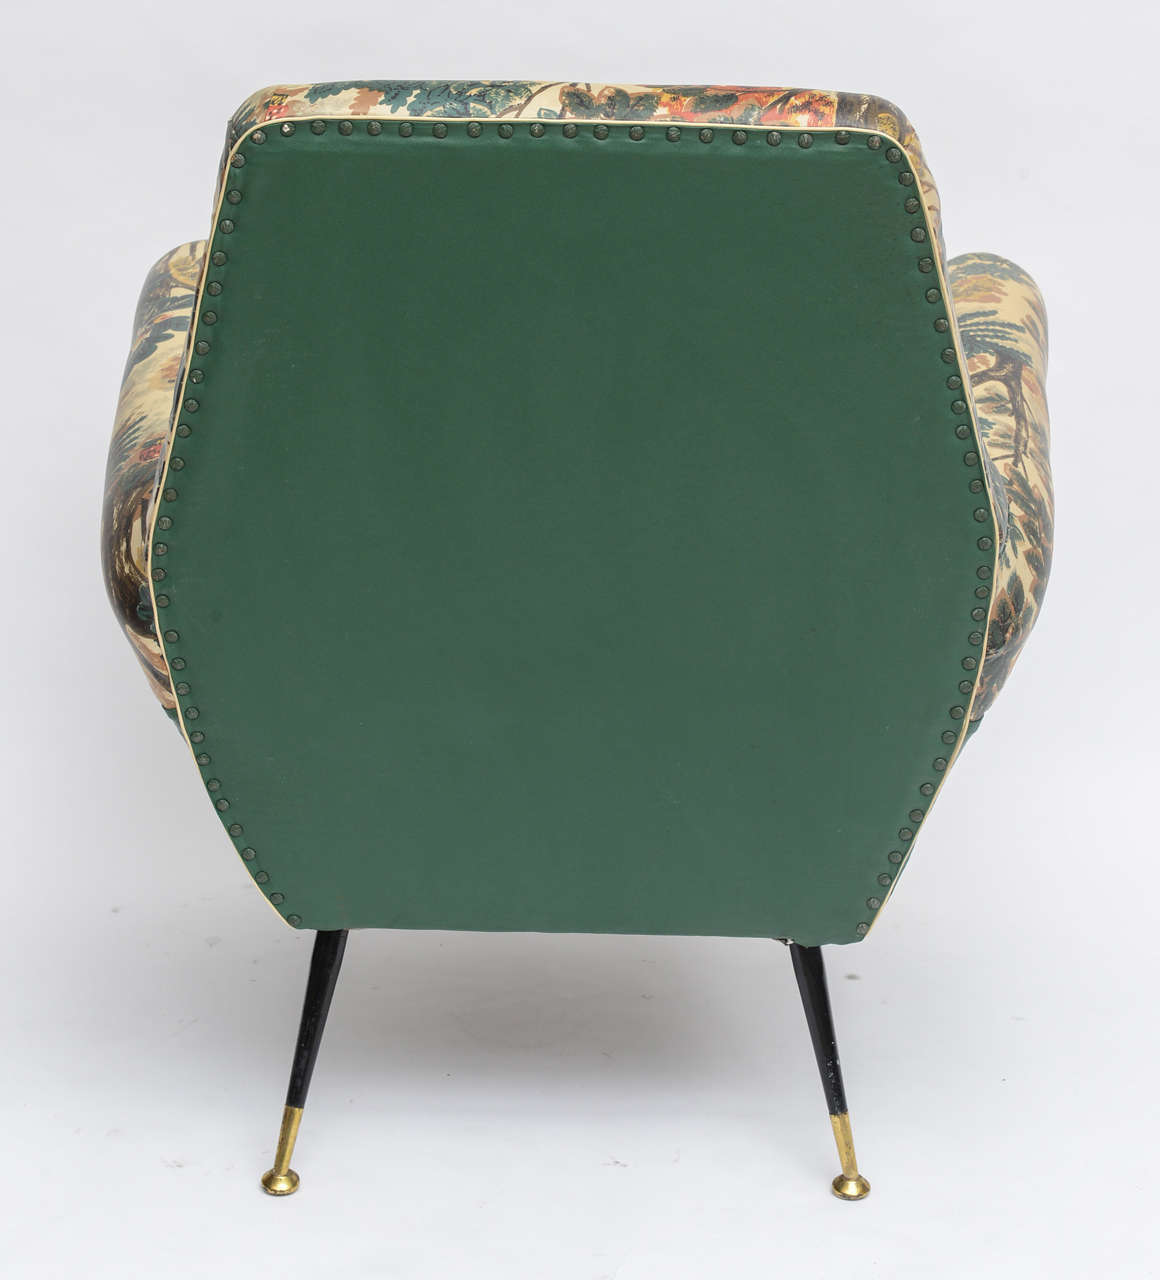 50's Italian Armchair with Original Upholstery (2 Available) 7